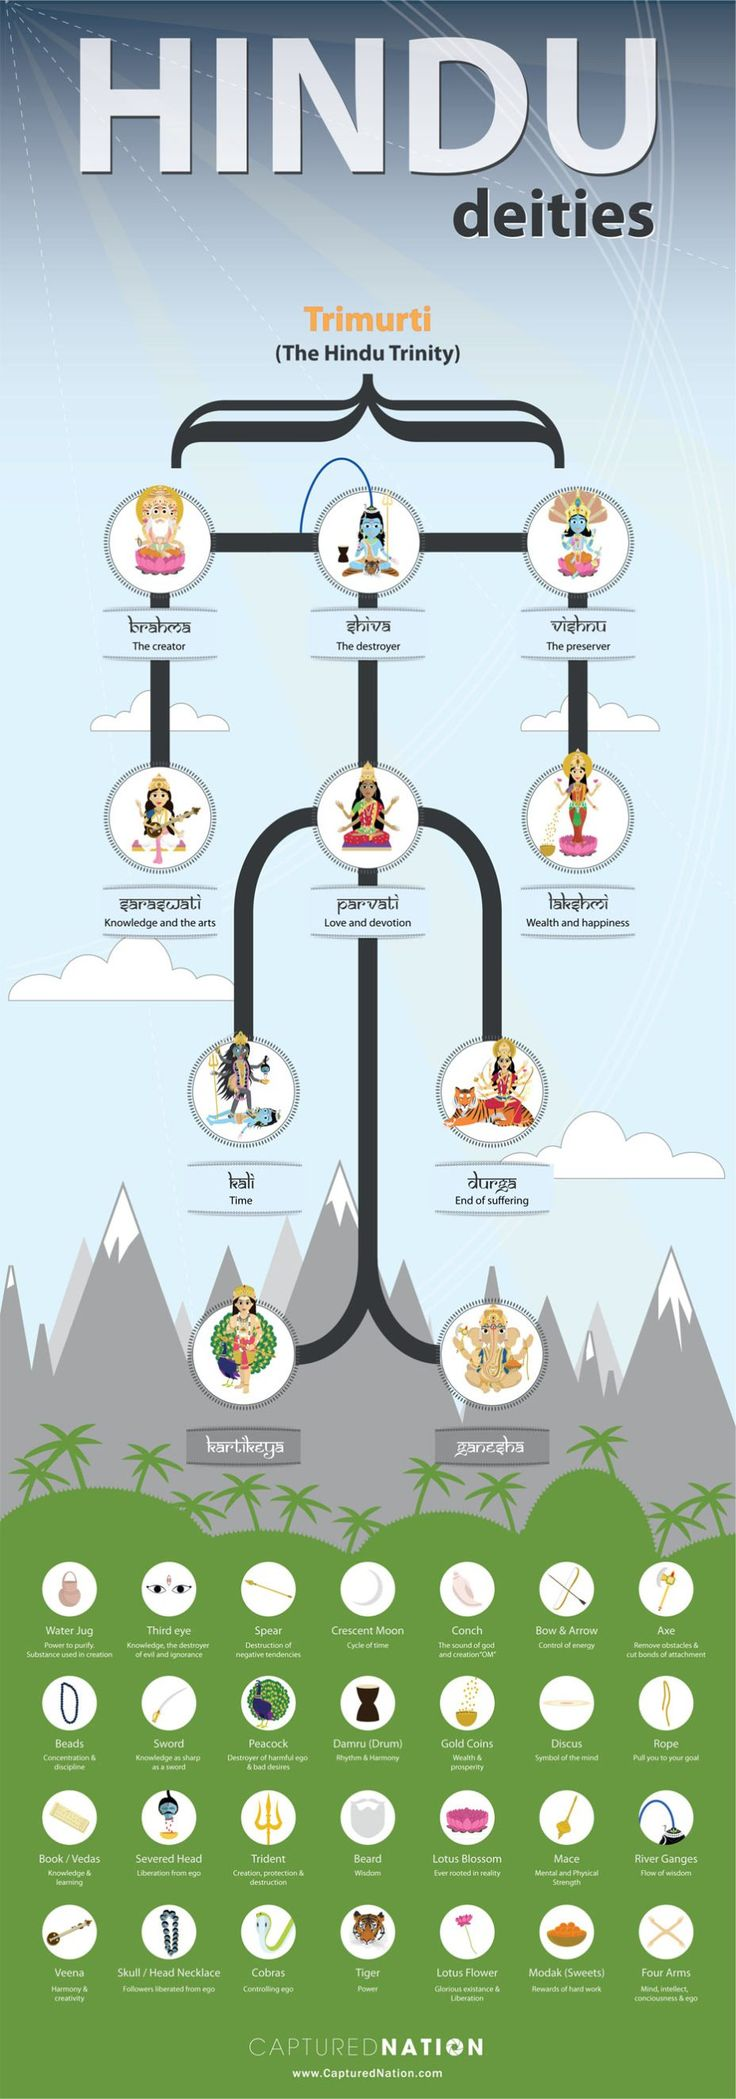 Ten Major Gods and Goddesses of Hinduism